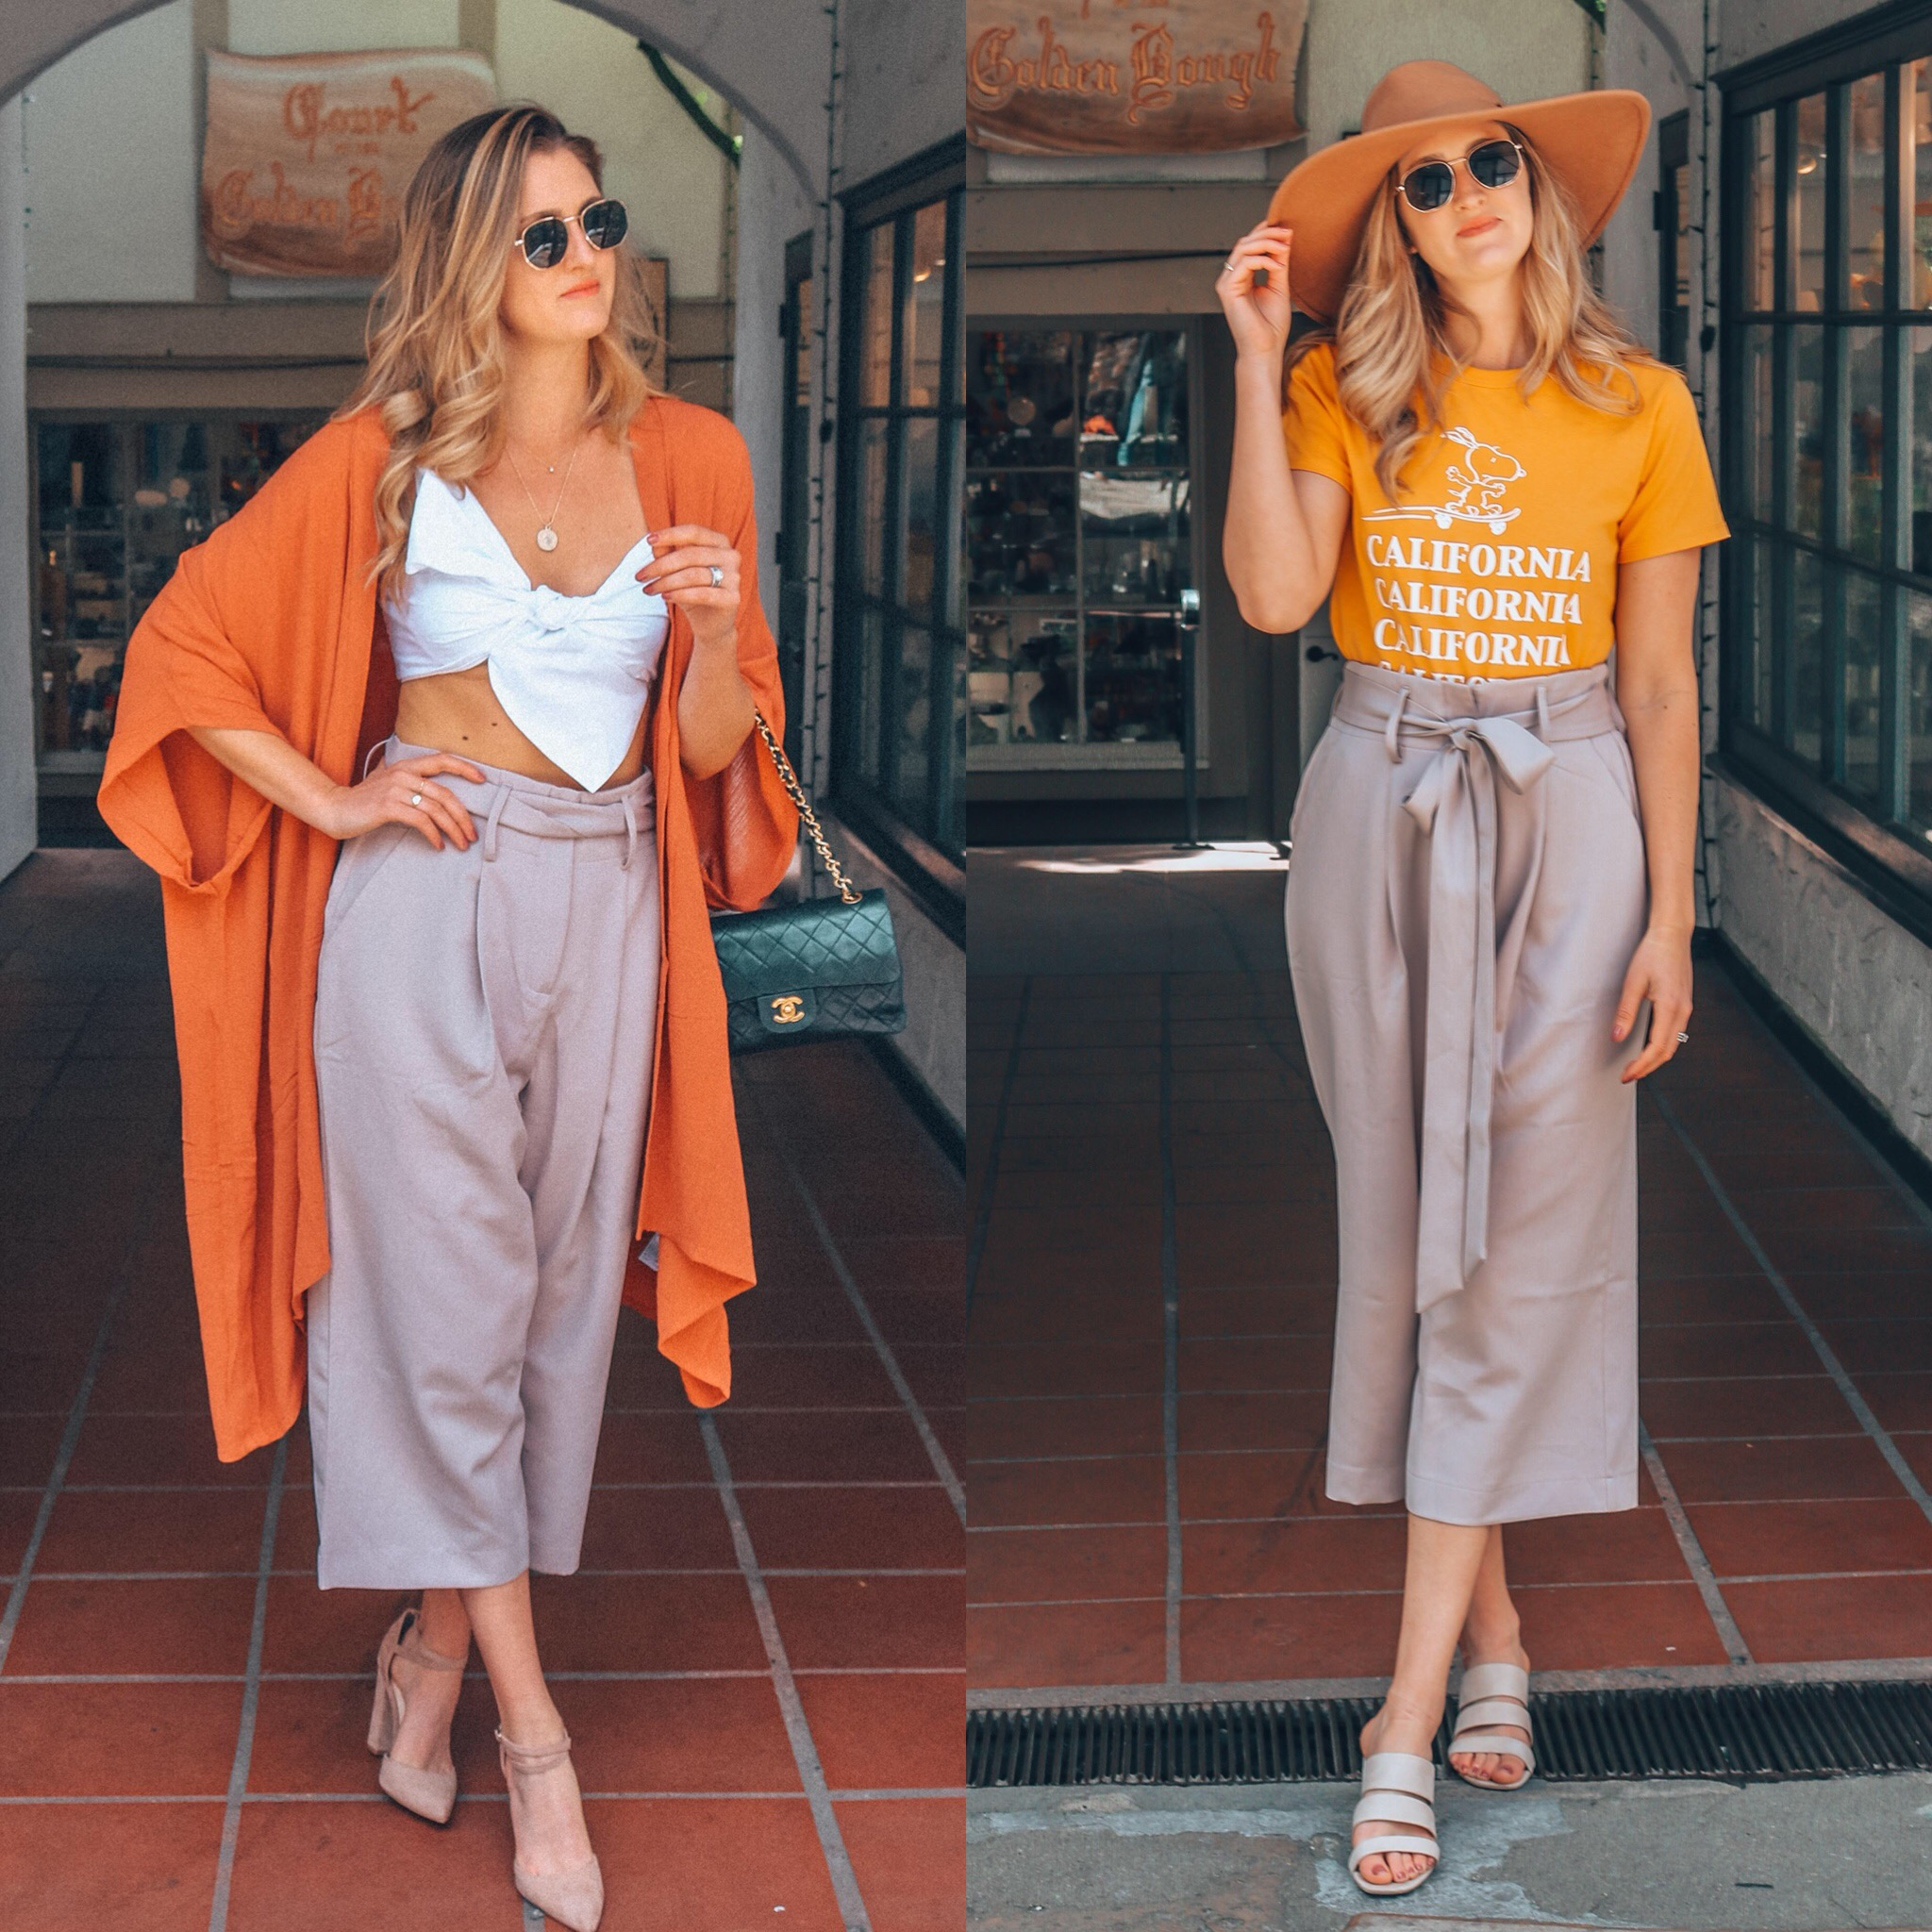 Dress It Up // Dress It Down - Culottes $35